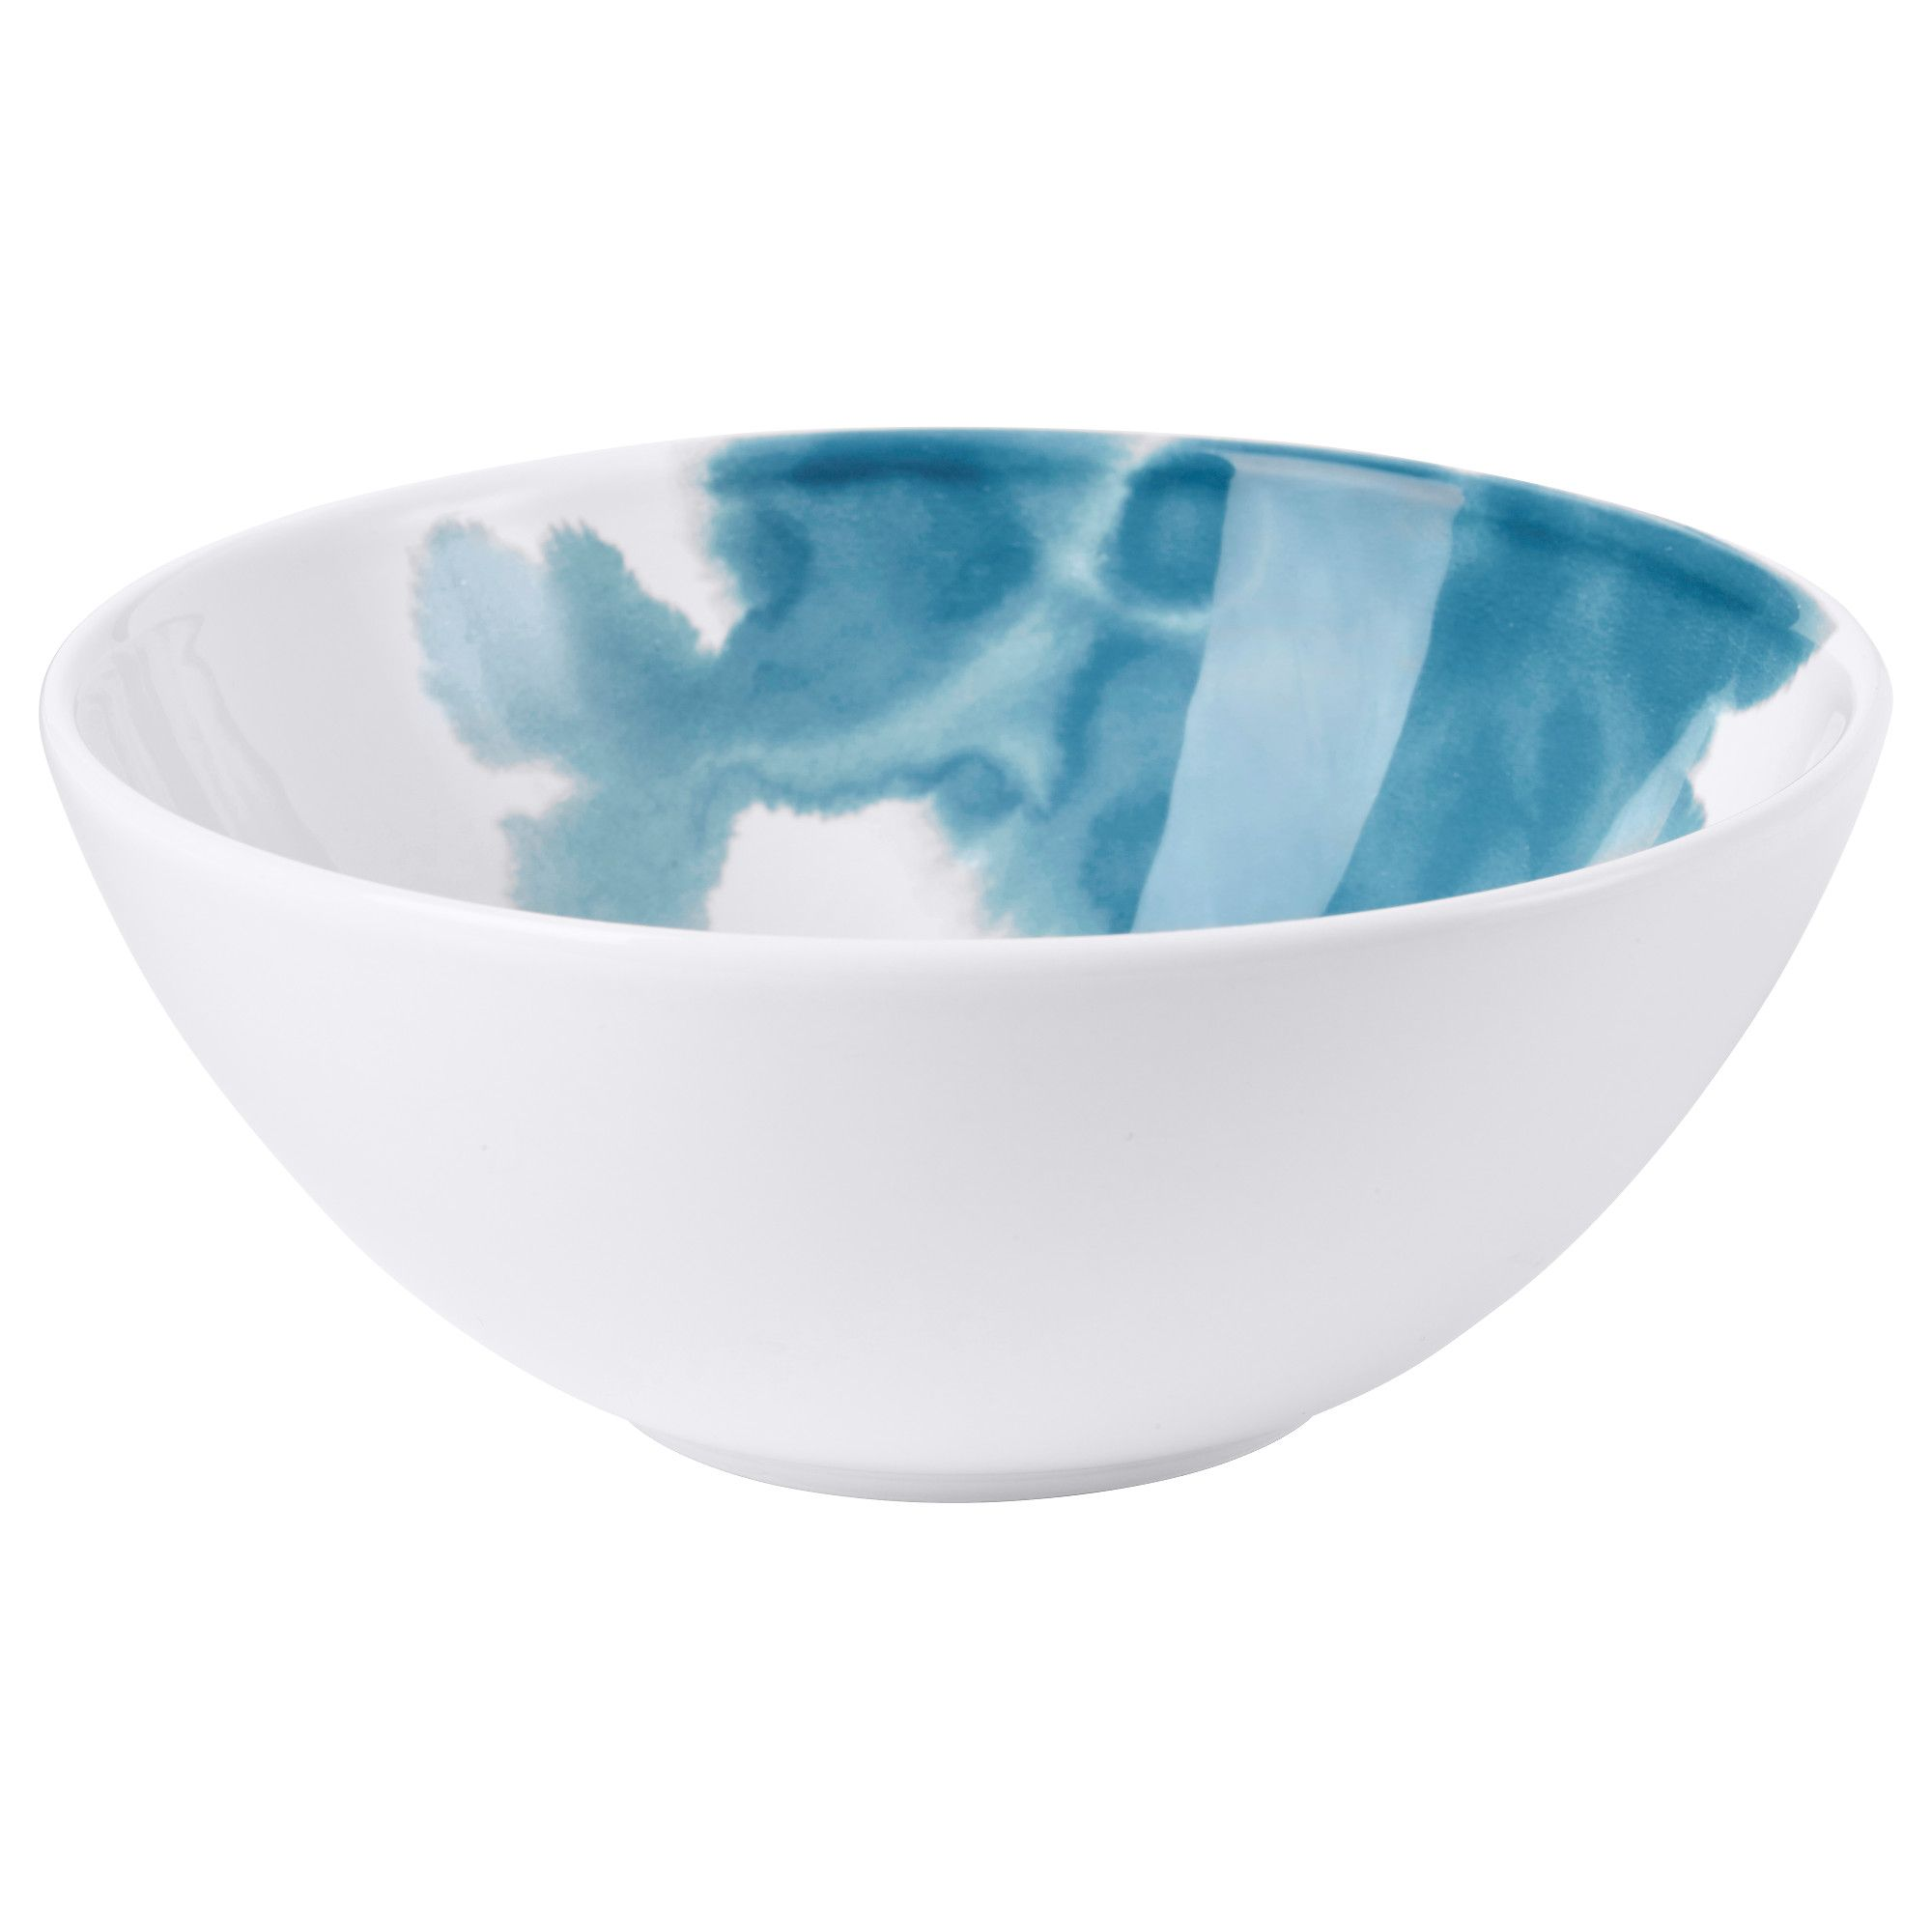 BEHAGA Bowl, turquoise | Dinnerware, Bowls and Turquoise art